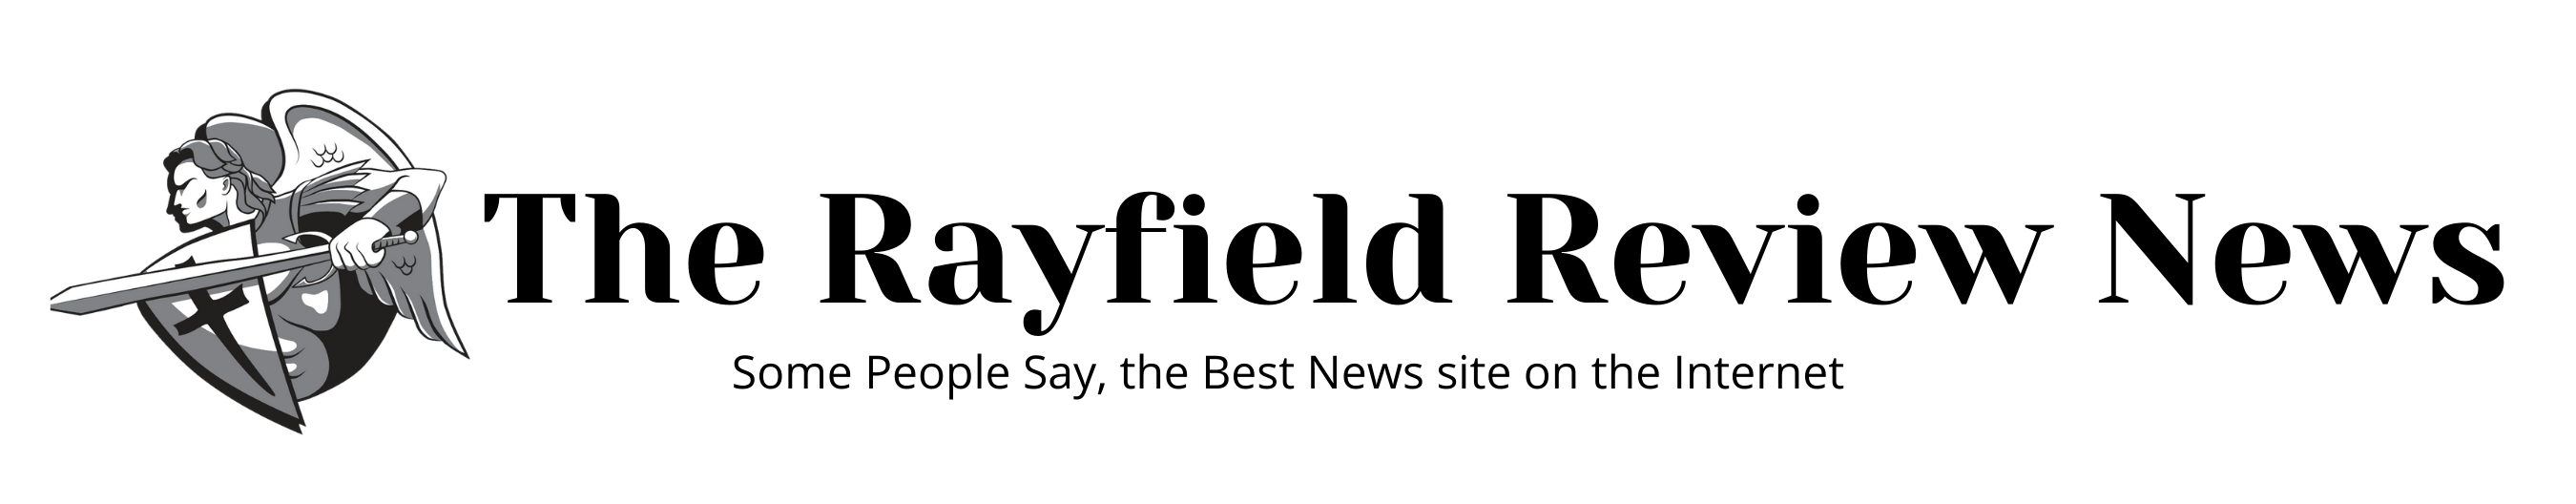 Rayfield Review News